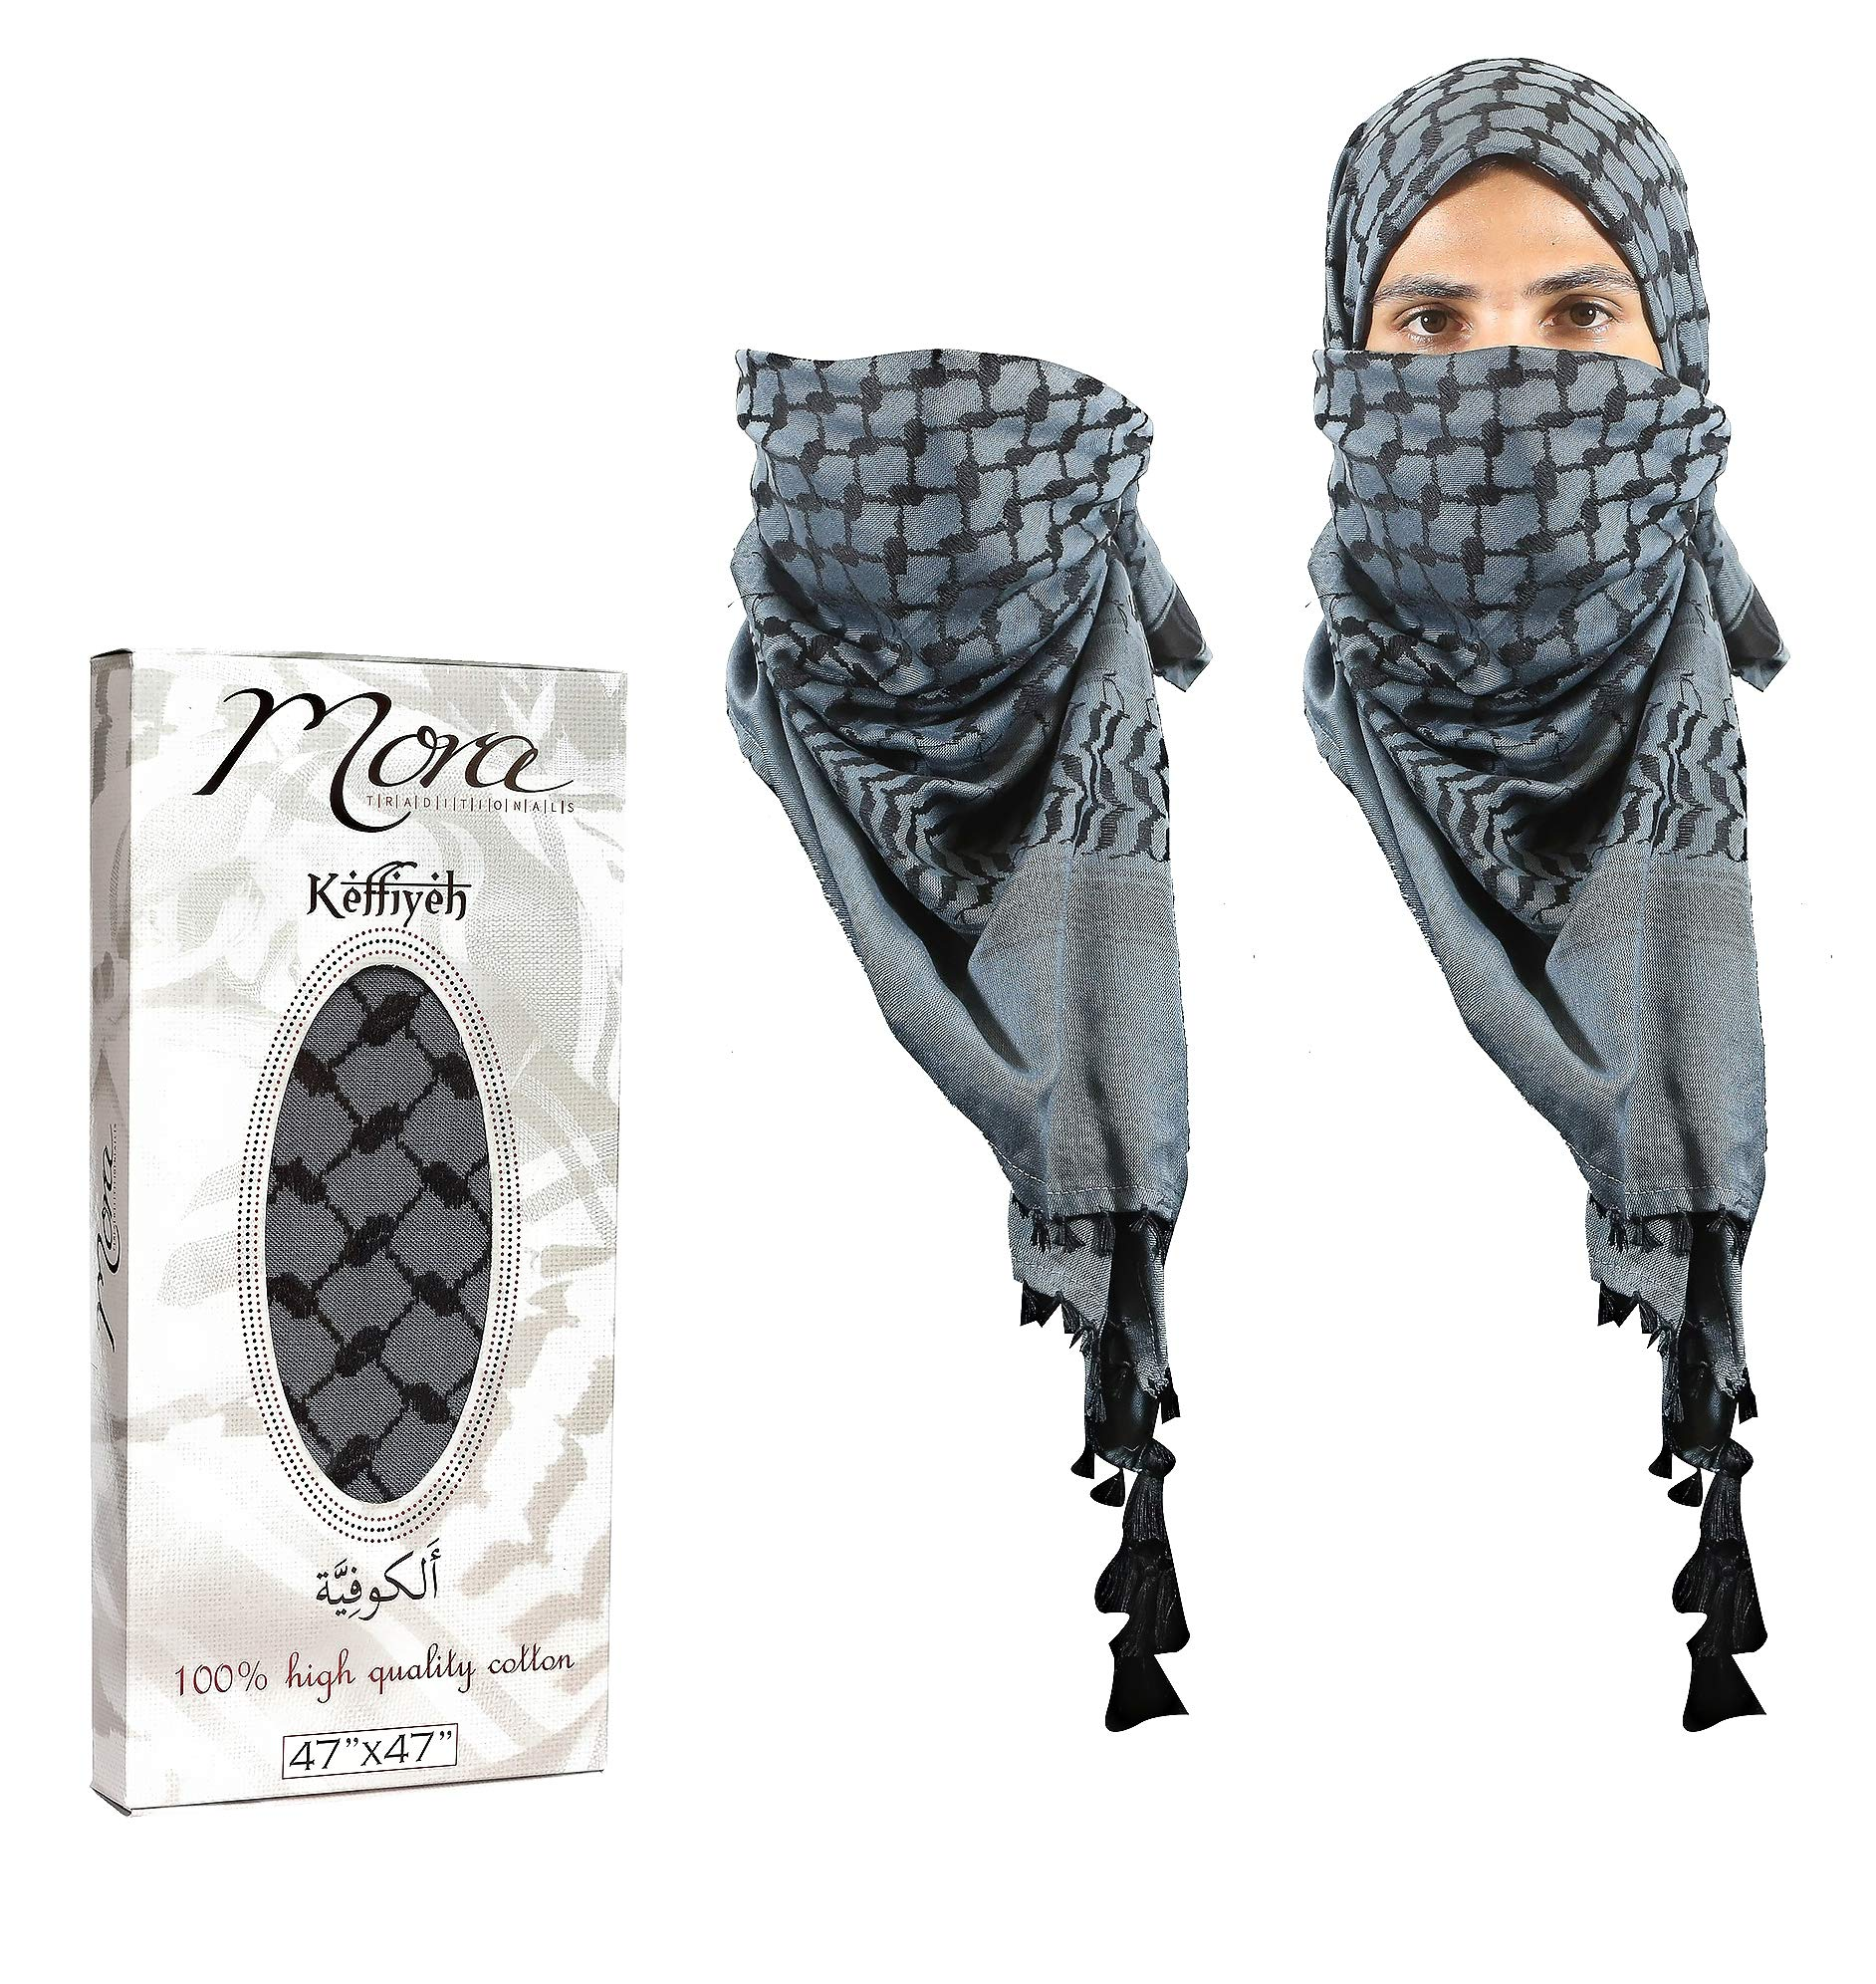 04f5220202b Mora Premium Shemagh Scarf - Beautiful gift box - Unique Stylish Design  Large - 100% Cotton Arab Tactical Military Desert Head Neck Keffiyeh Wrap  with ...